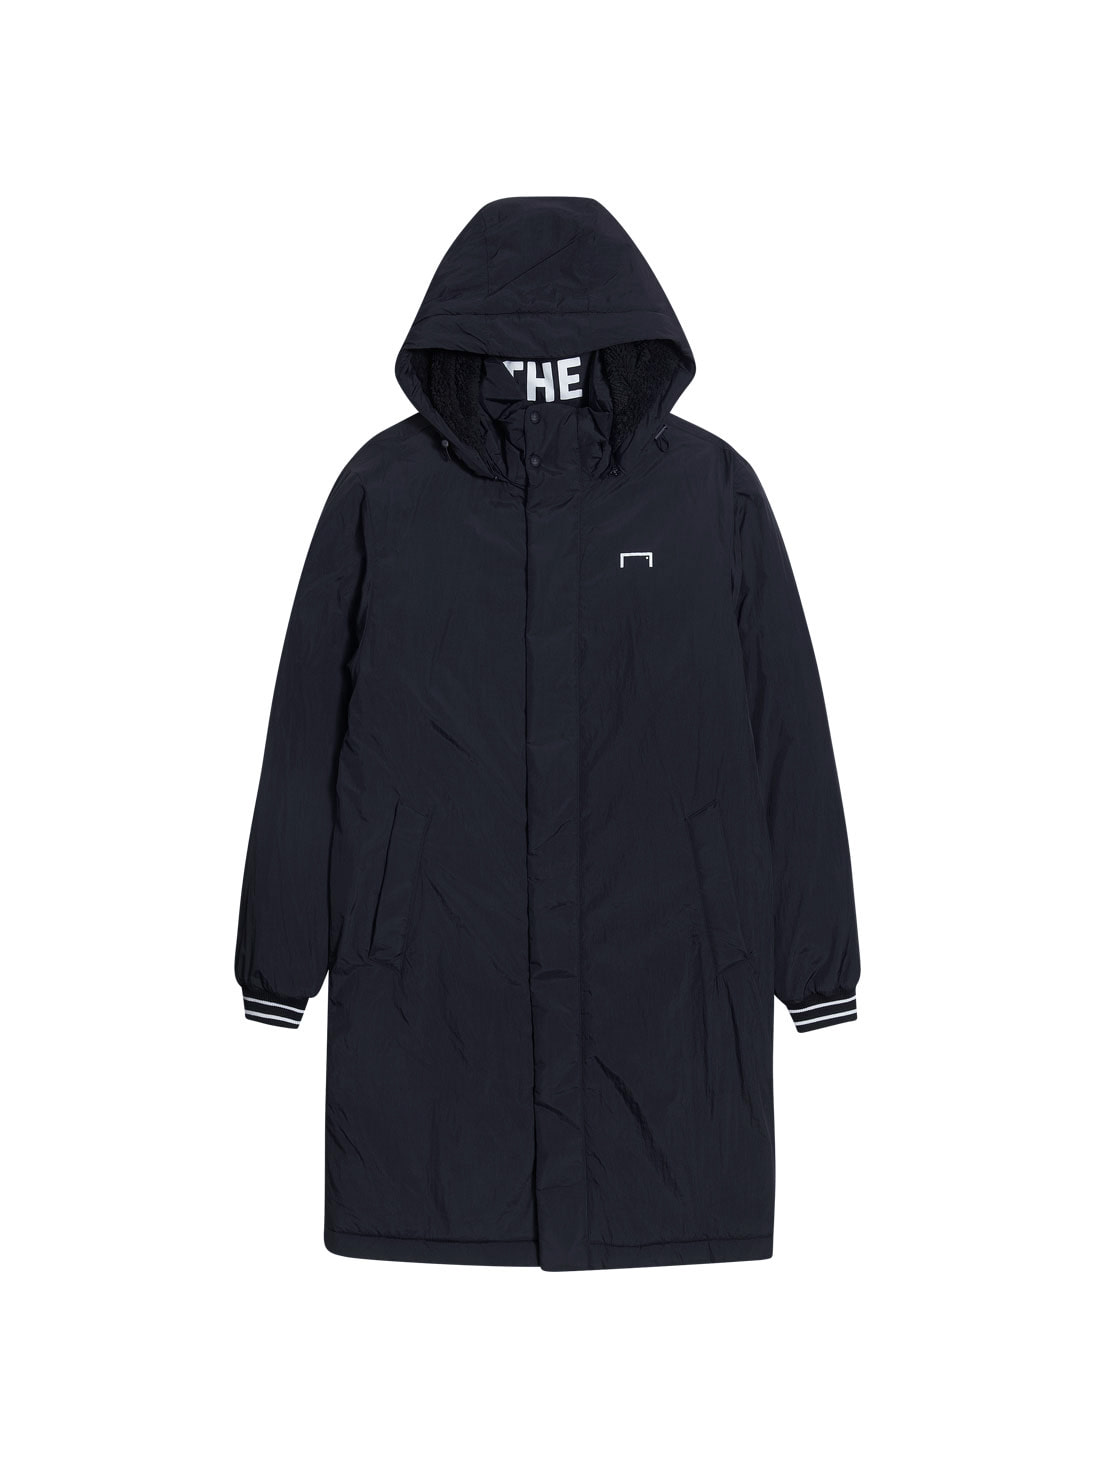 BIG LOGO LONG PARKA - BLACK